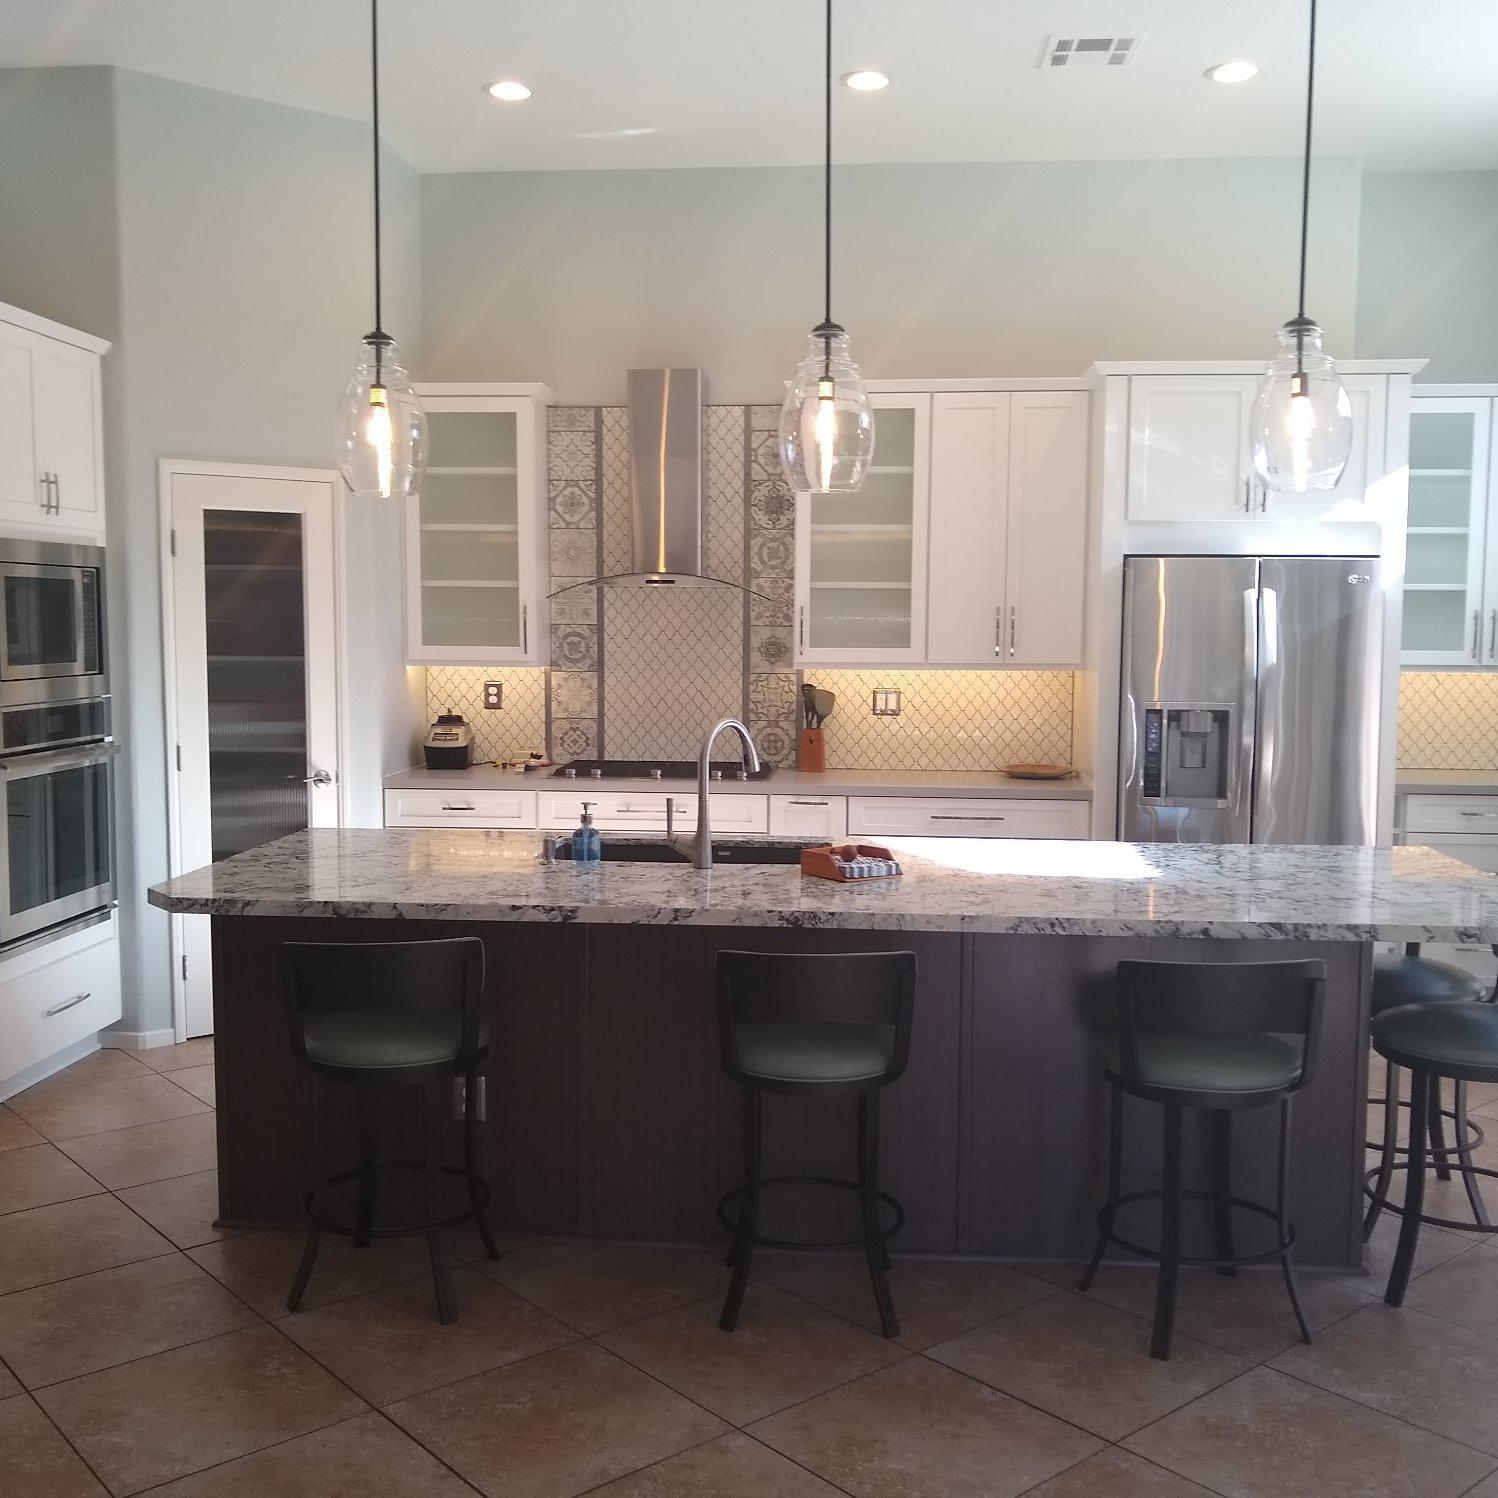 Open Kitchen  Build It 619 889-9919 cell text